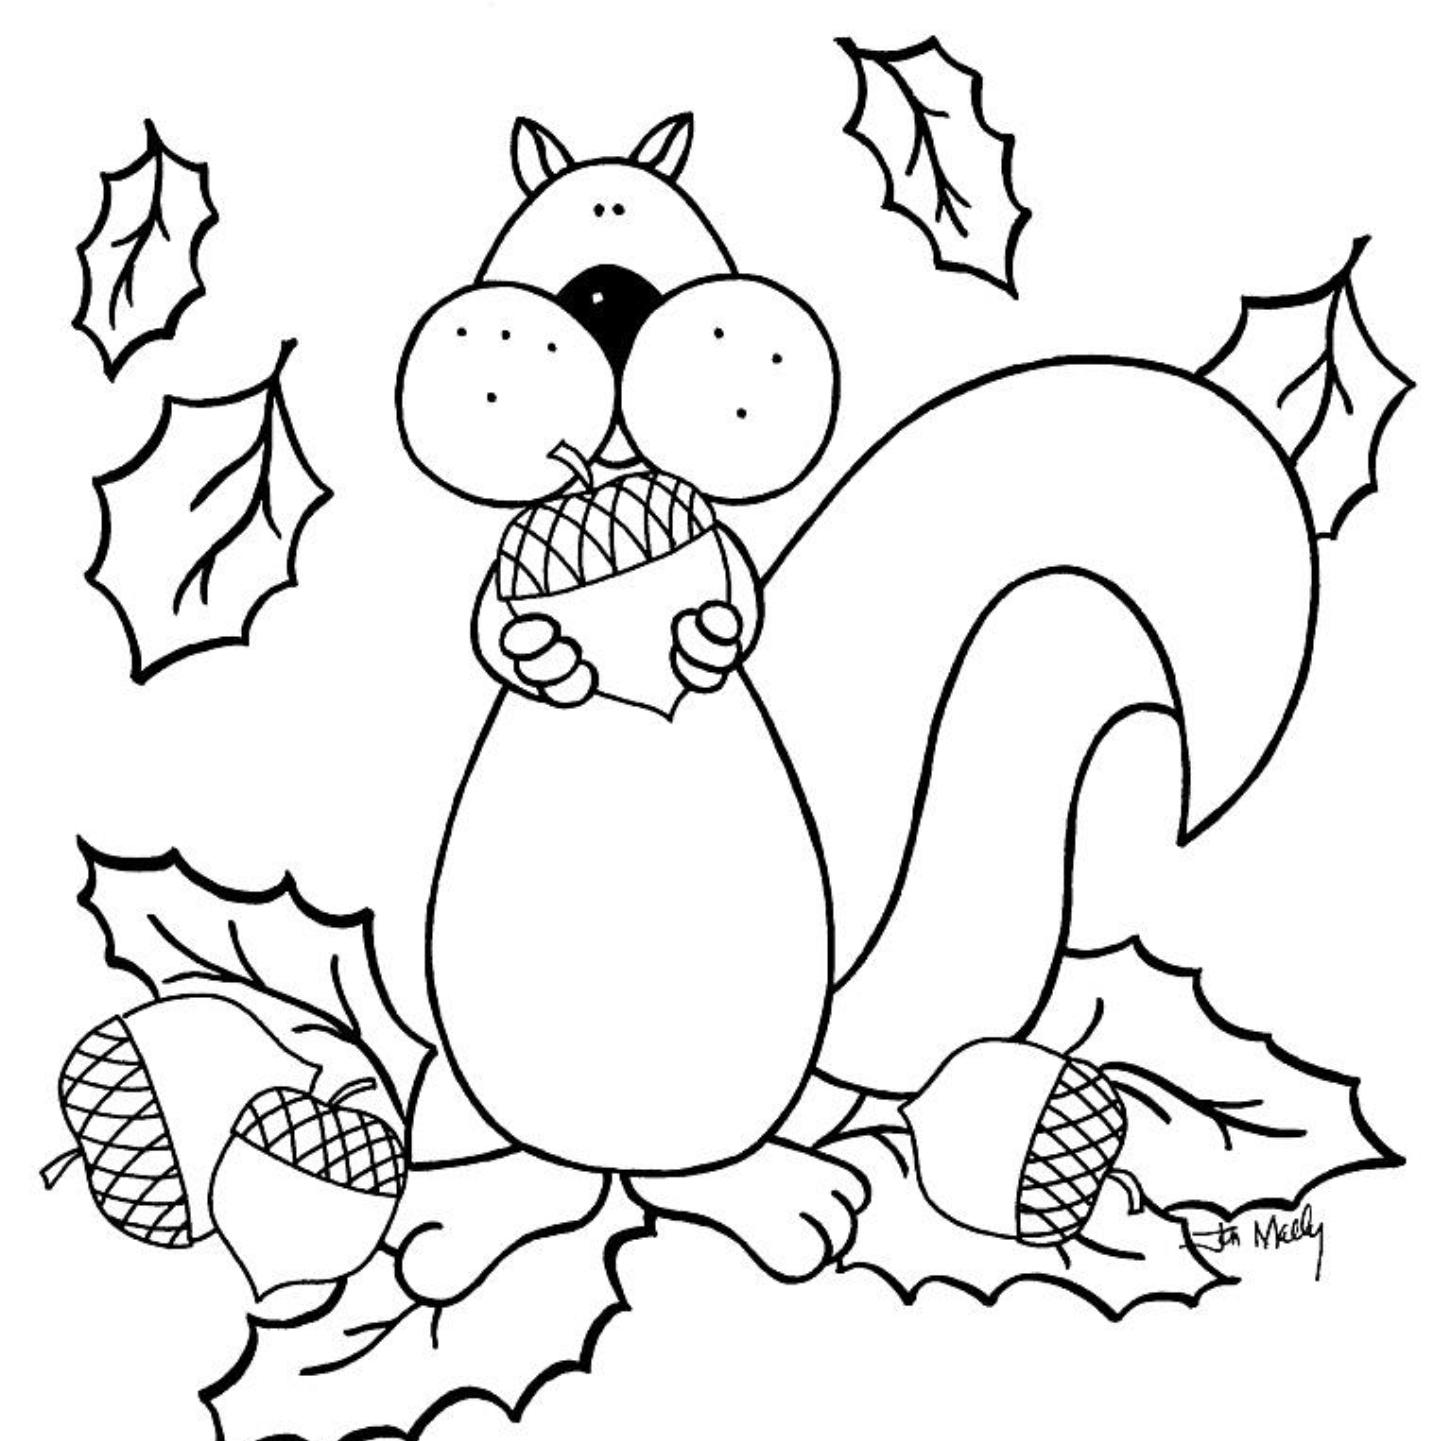 free fall coloring pages printable free printable fall coloring pages for kids best pages fall printable free coloring